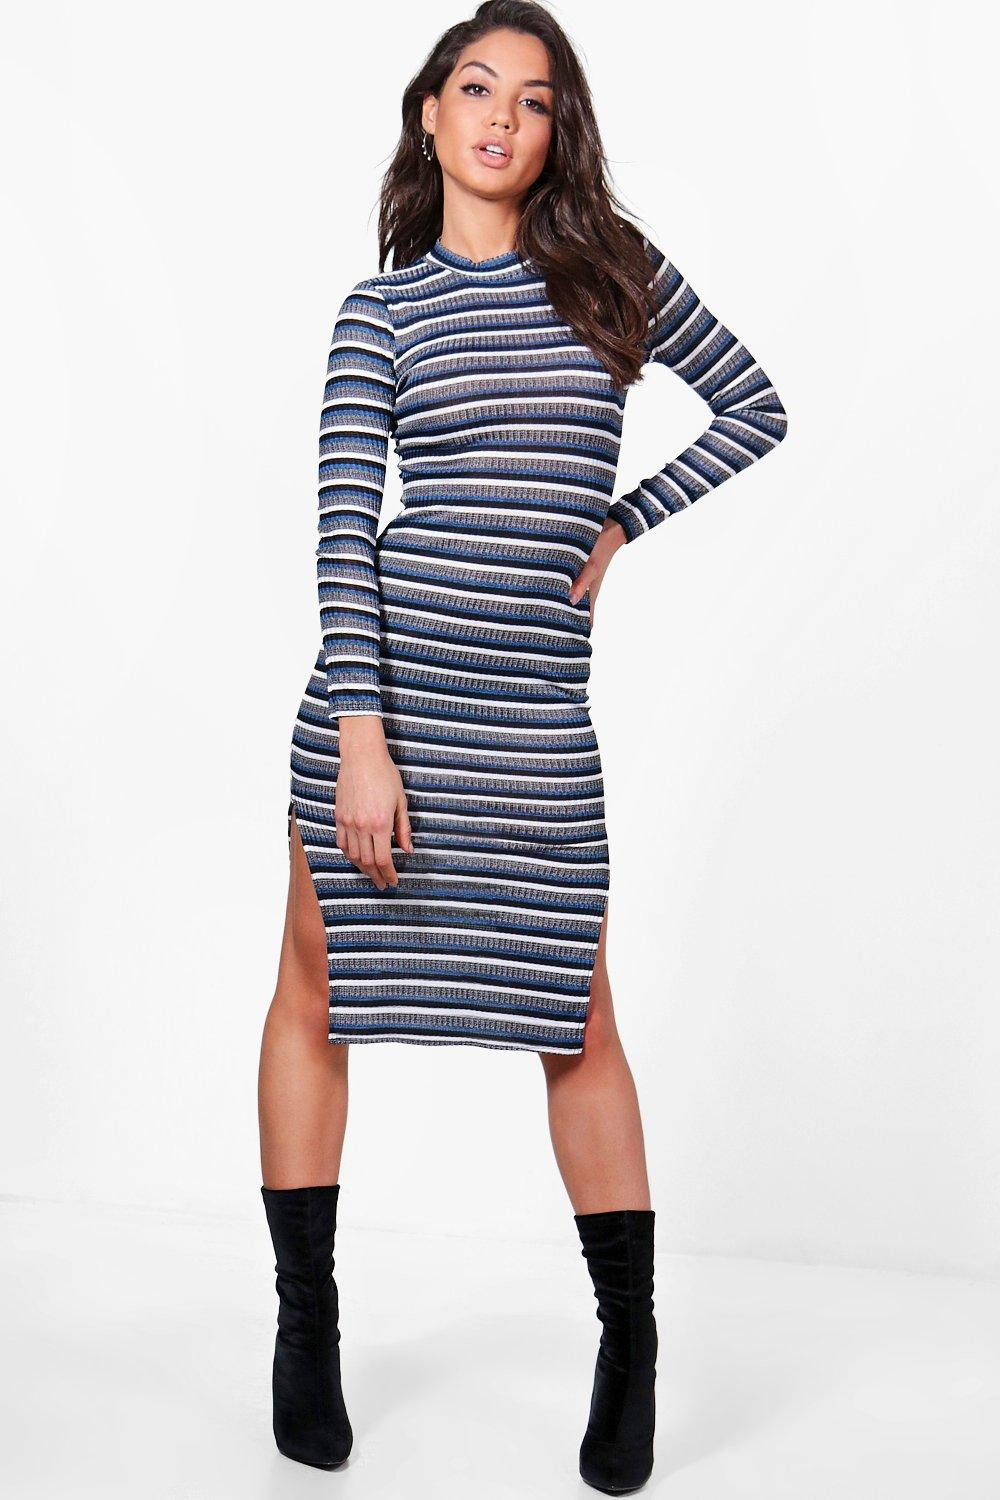 9c29c01fbc Natalie Multi Stripe Midi Bodycon Dress. Hover to zoom